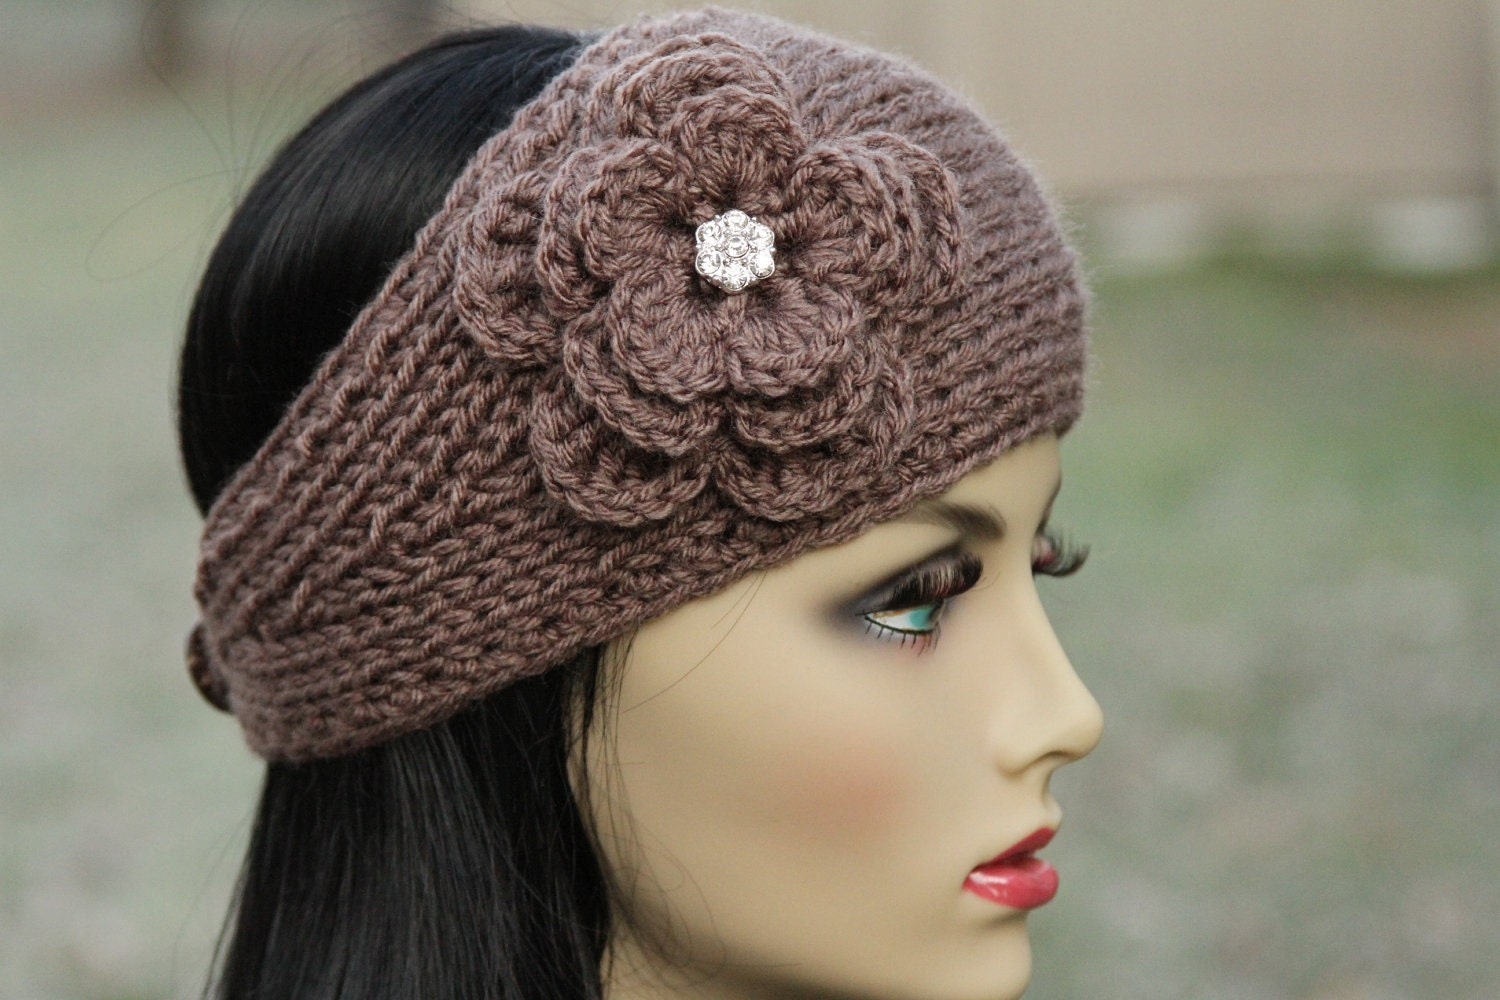 Knitting Patterns For Ear Warmers With Flower : Ear Warmer Headband Head Wrap Hand Knit Taupe